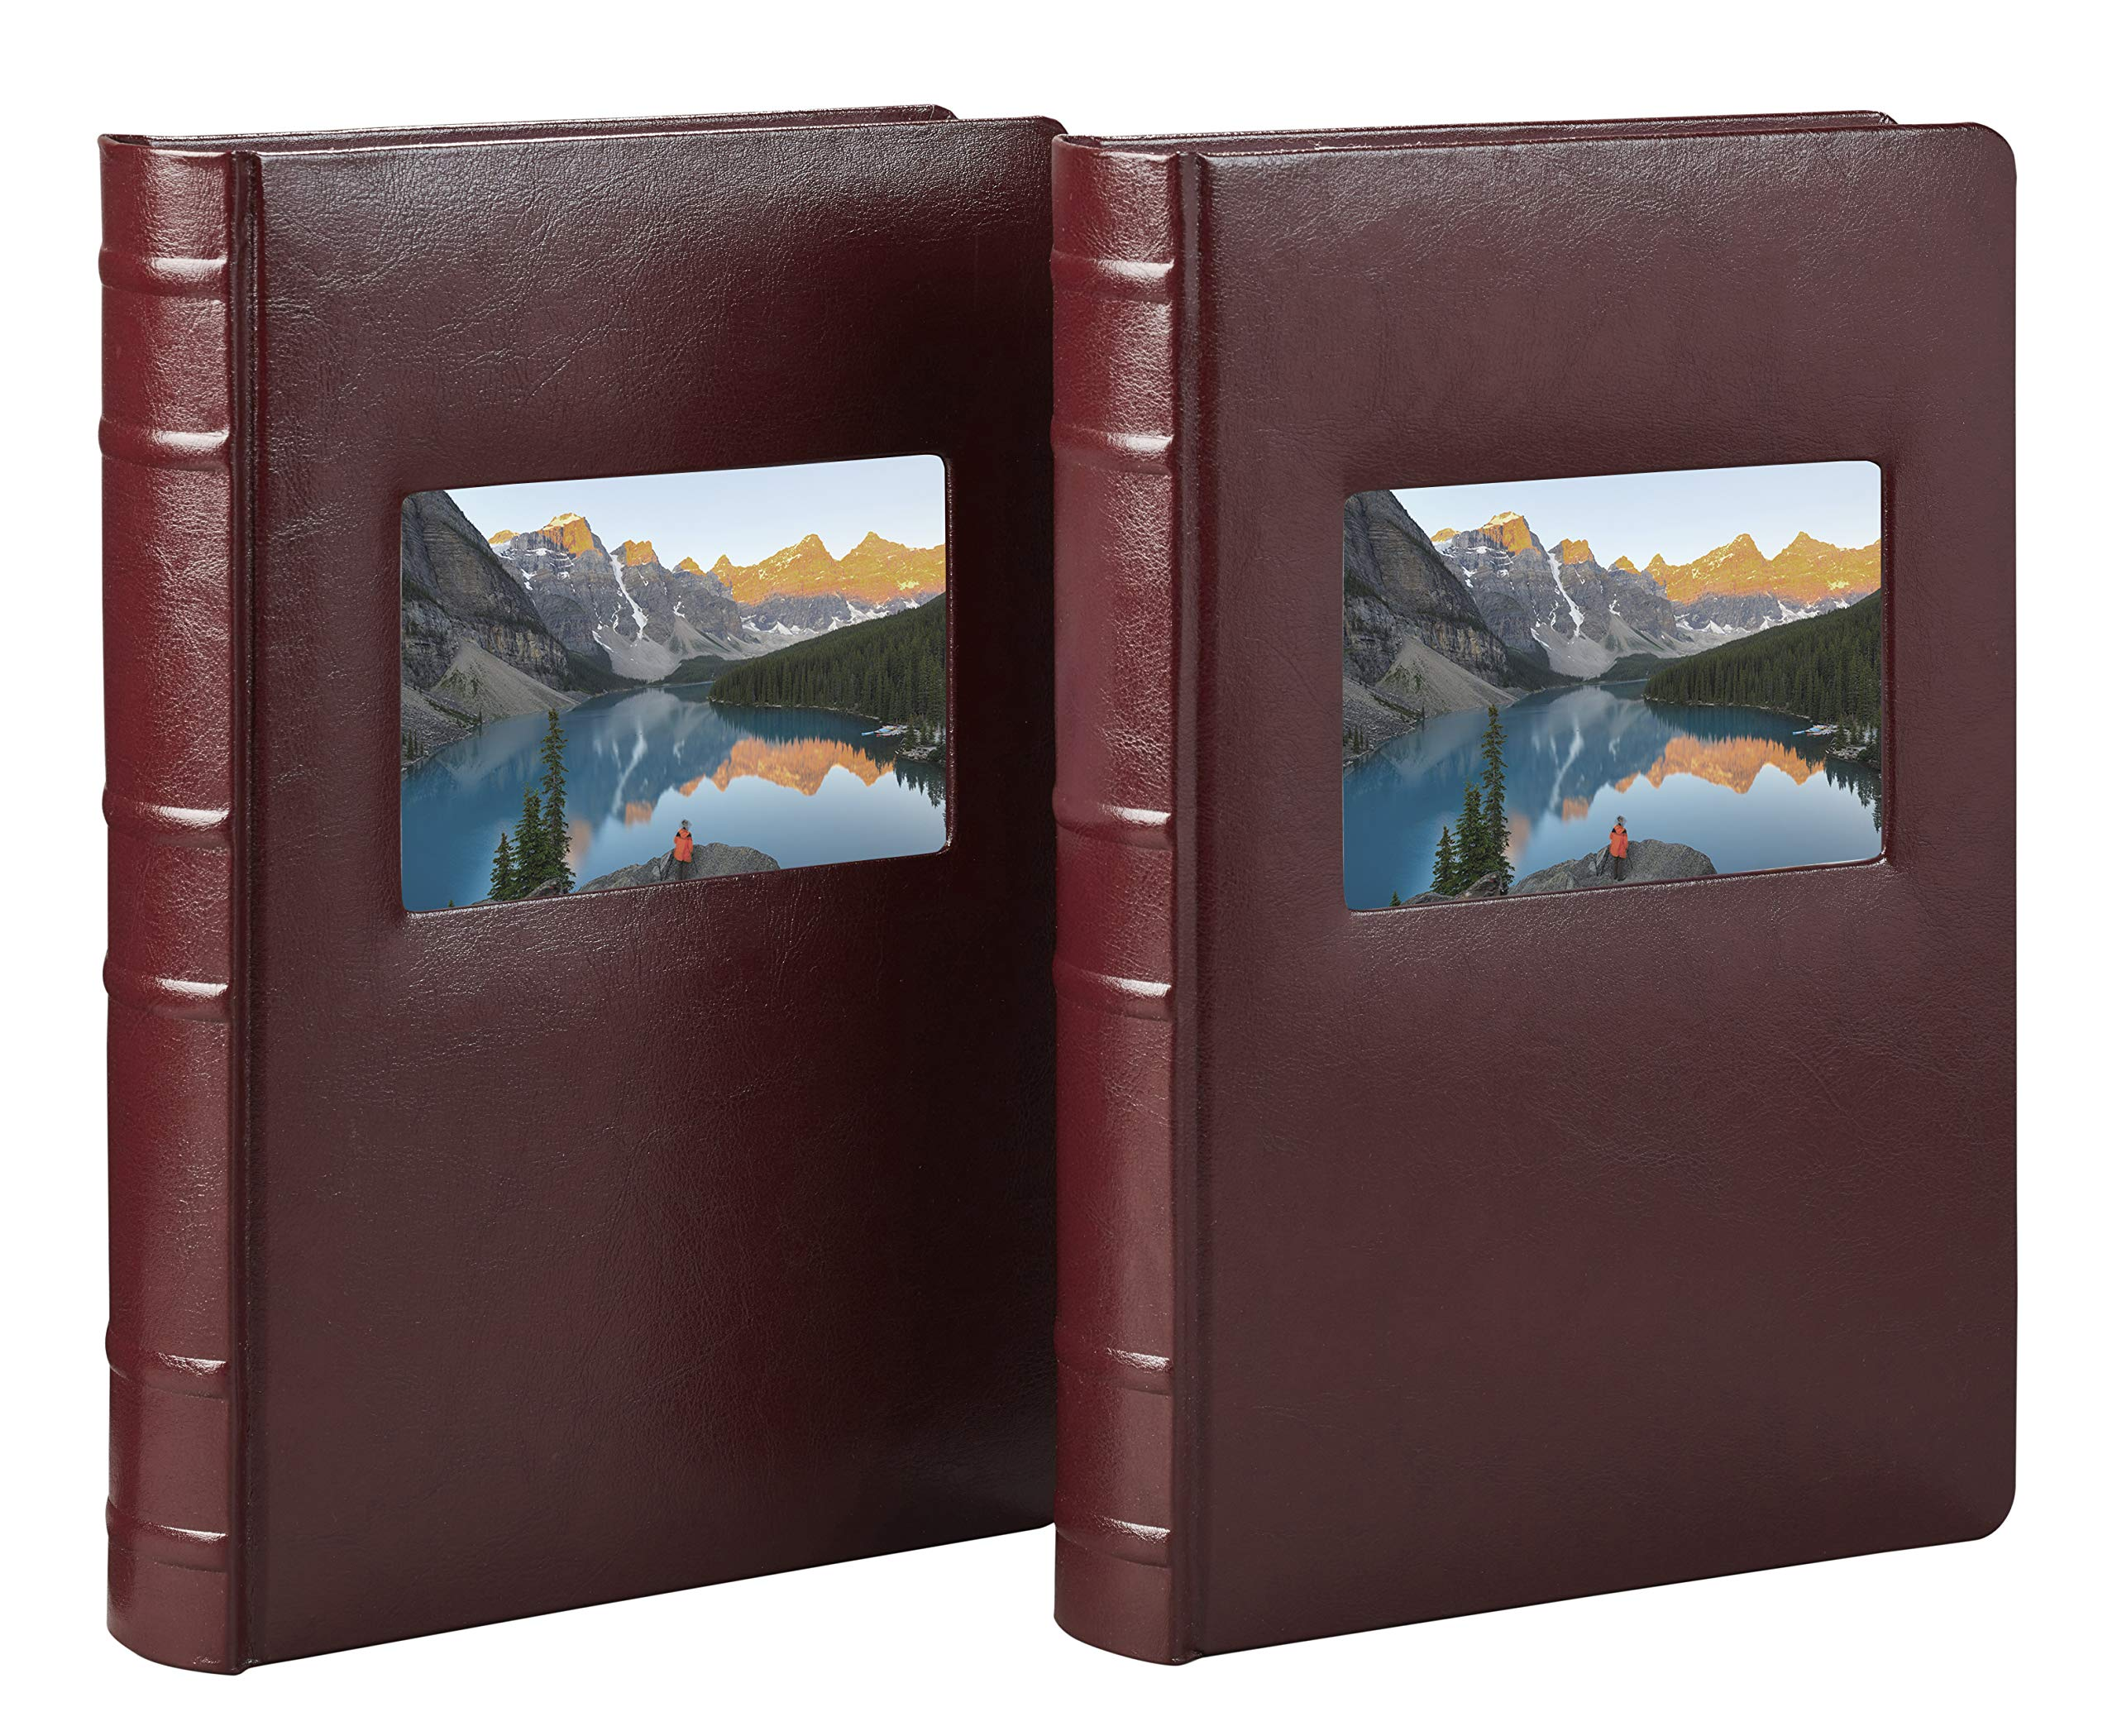 Old Town Bonded Leather Photo Album, 2 Pack (Burgundy)